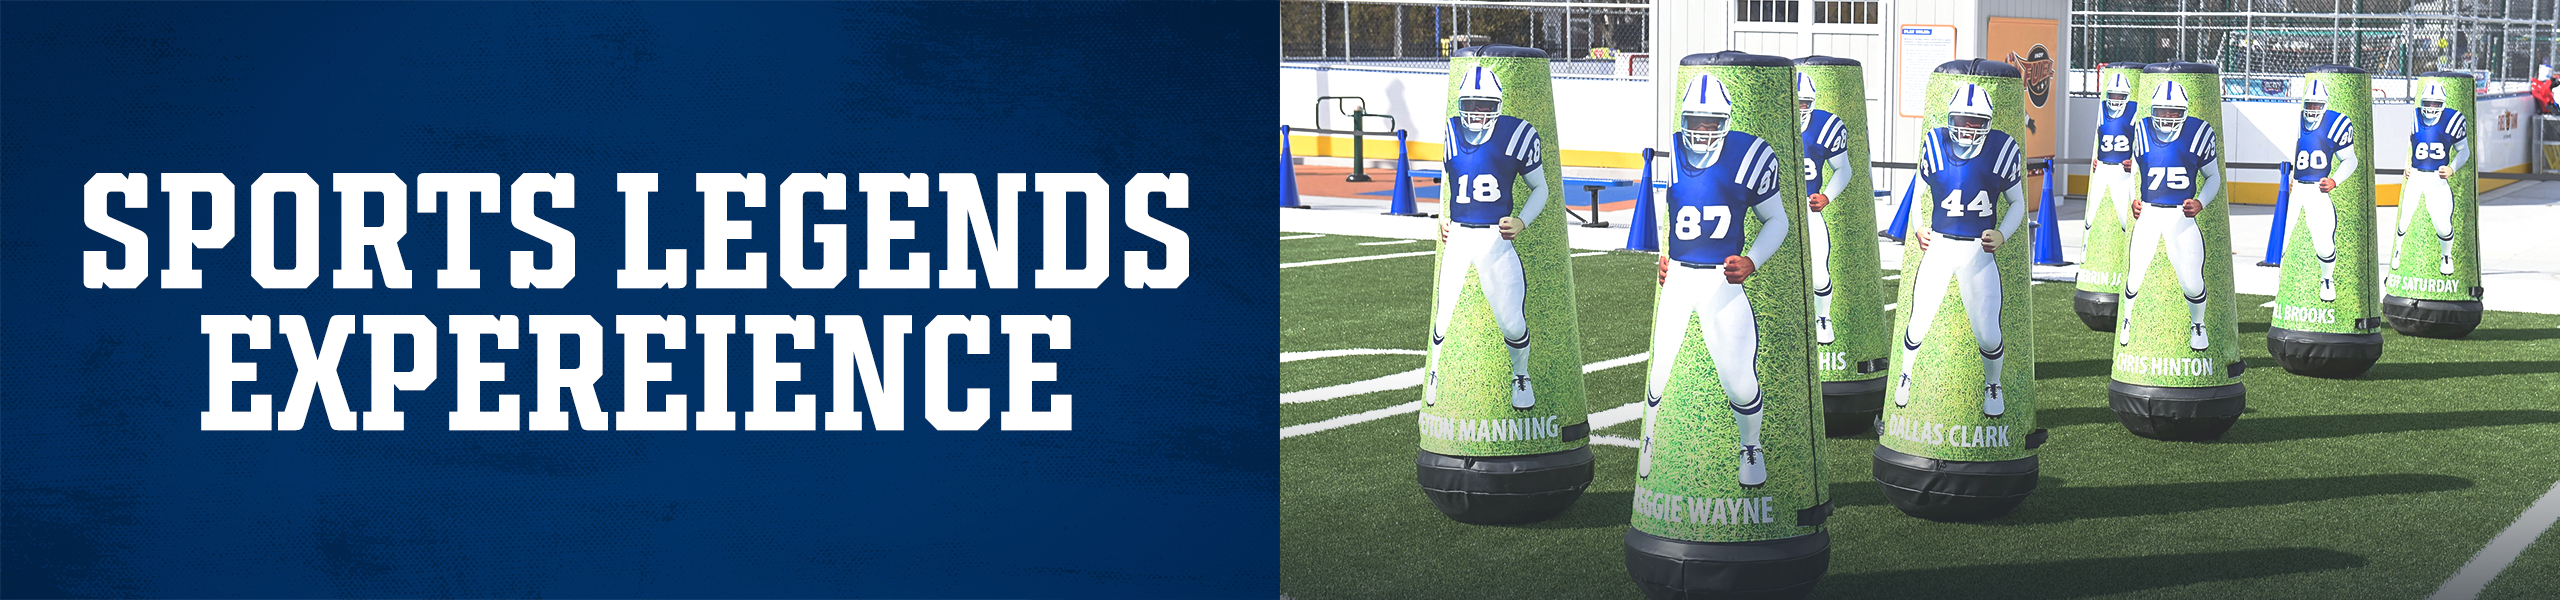 Indianapolis Colts Sports Legends Experience